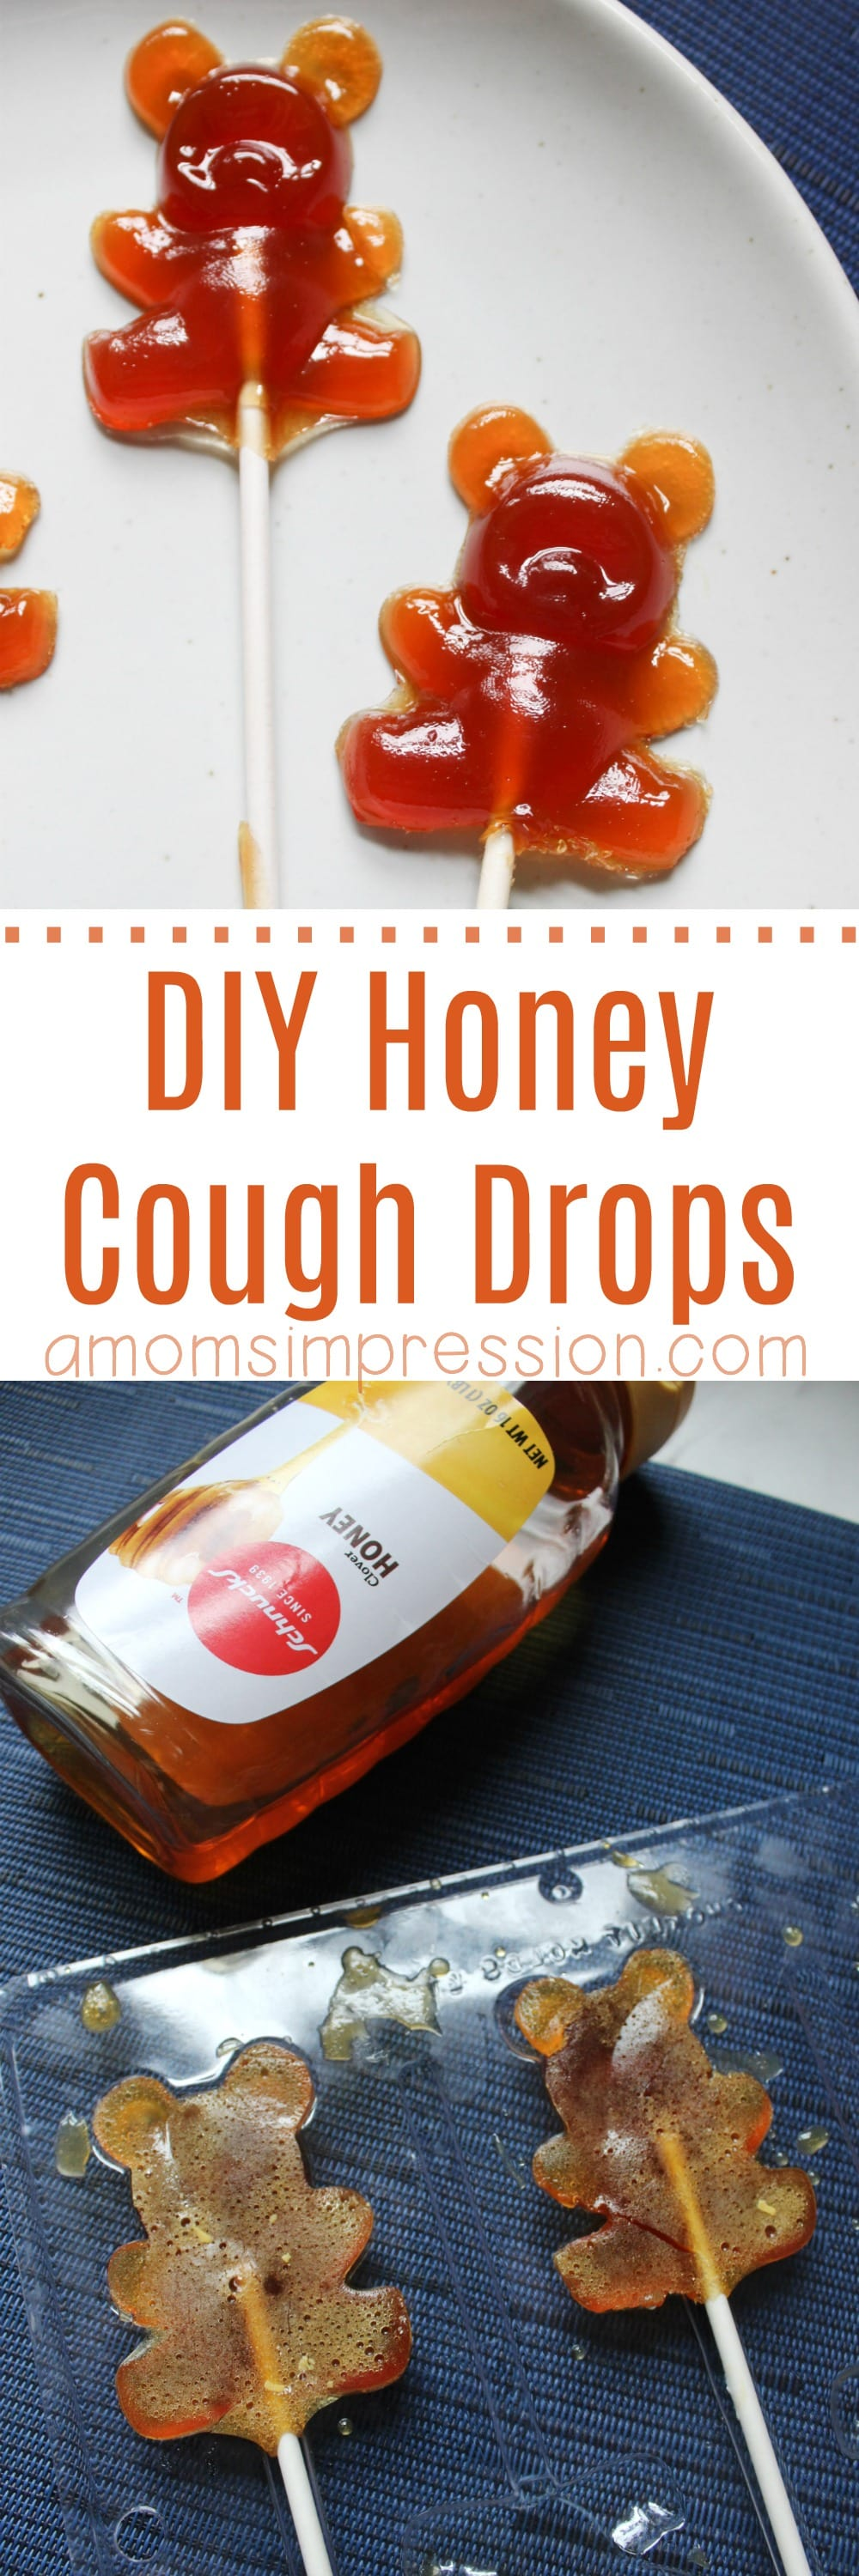 These homemade honey cough drops recipe can really soothe sore throats. They are great for kids when placed on lollipop sticks. You can adapt this recipe to add lemon, herbs, or essential oils for a custom remedy when you are feeling sick.